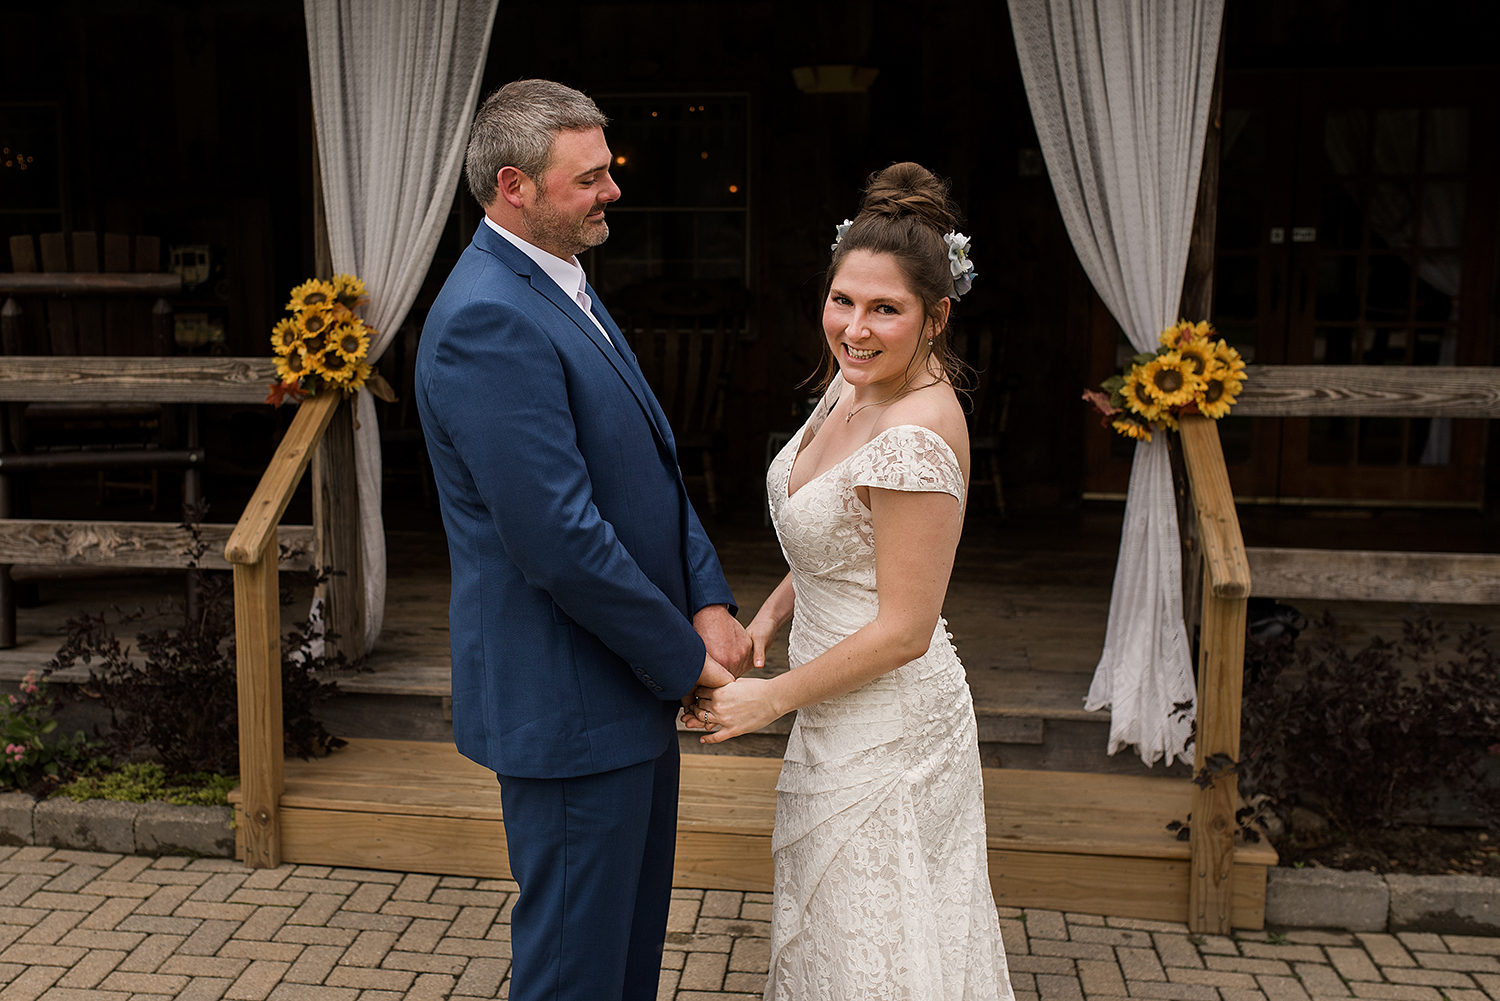 ct wedding photographer, rebecca lynne capture a first look at central ct wedding